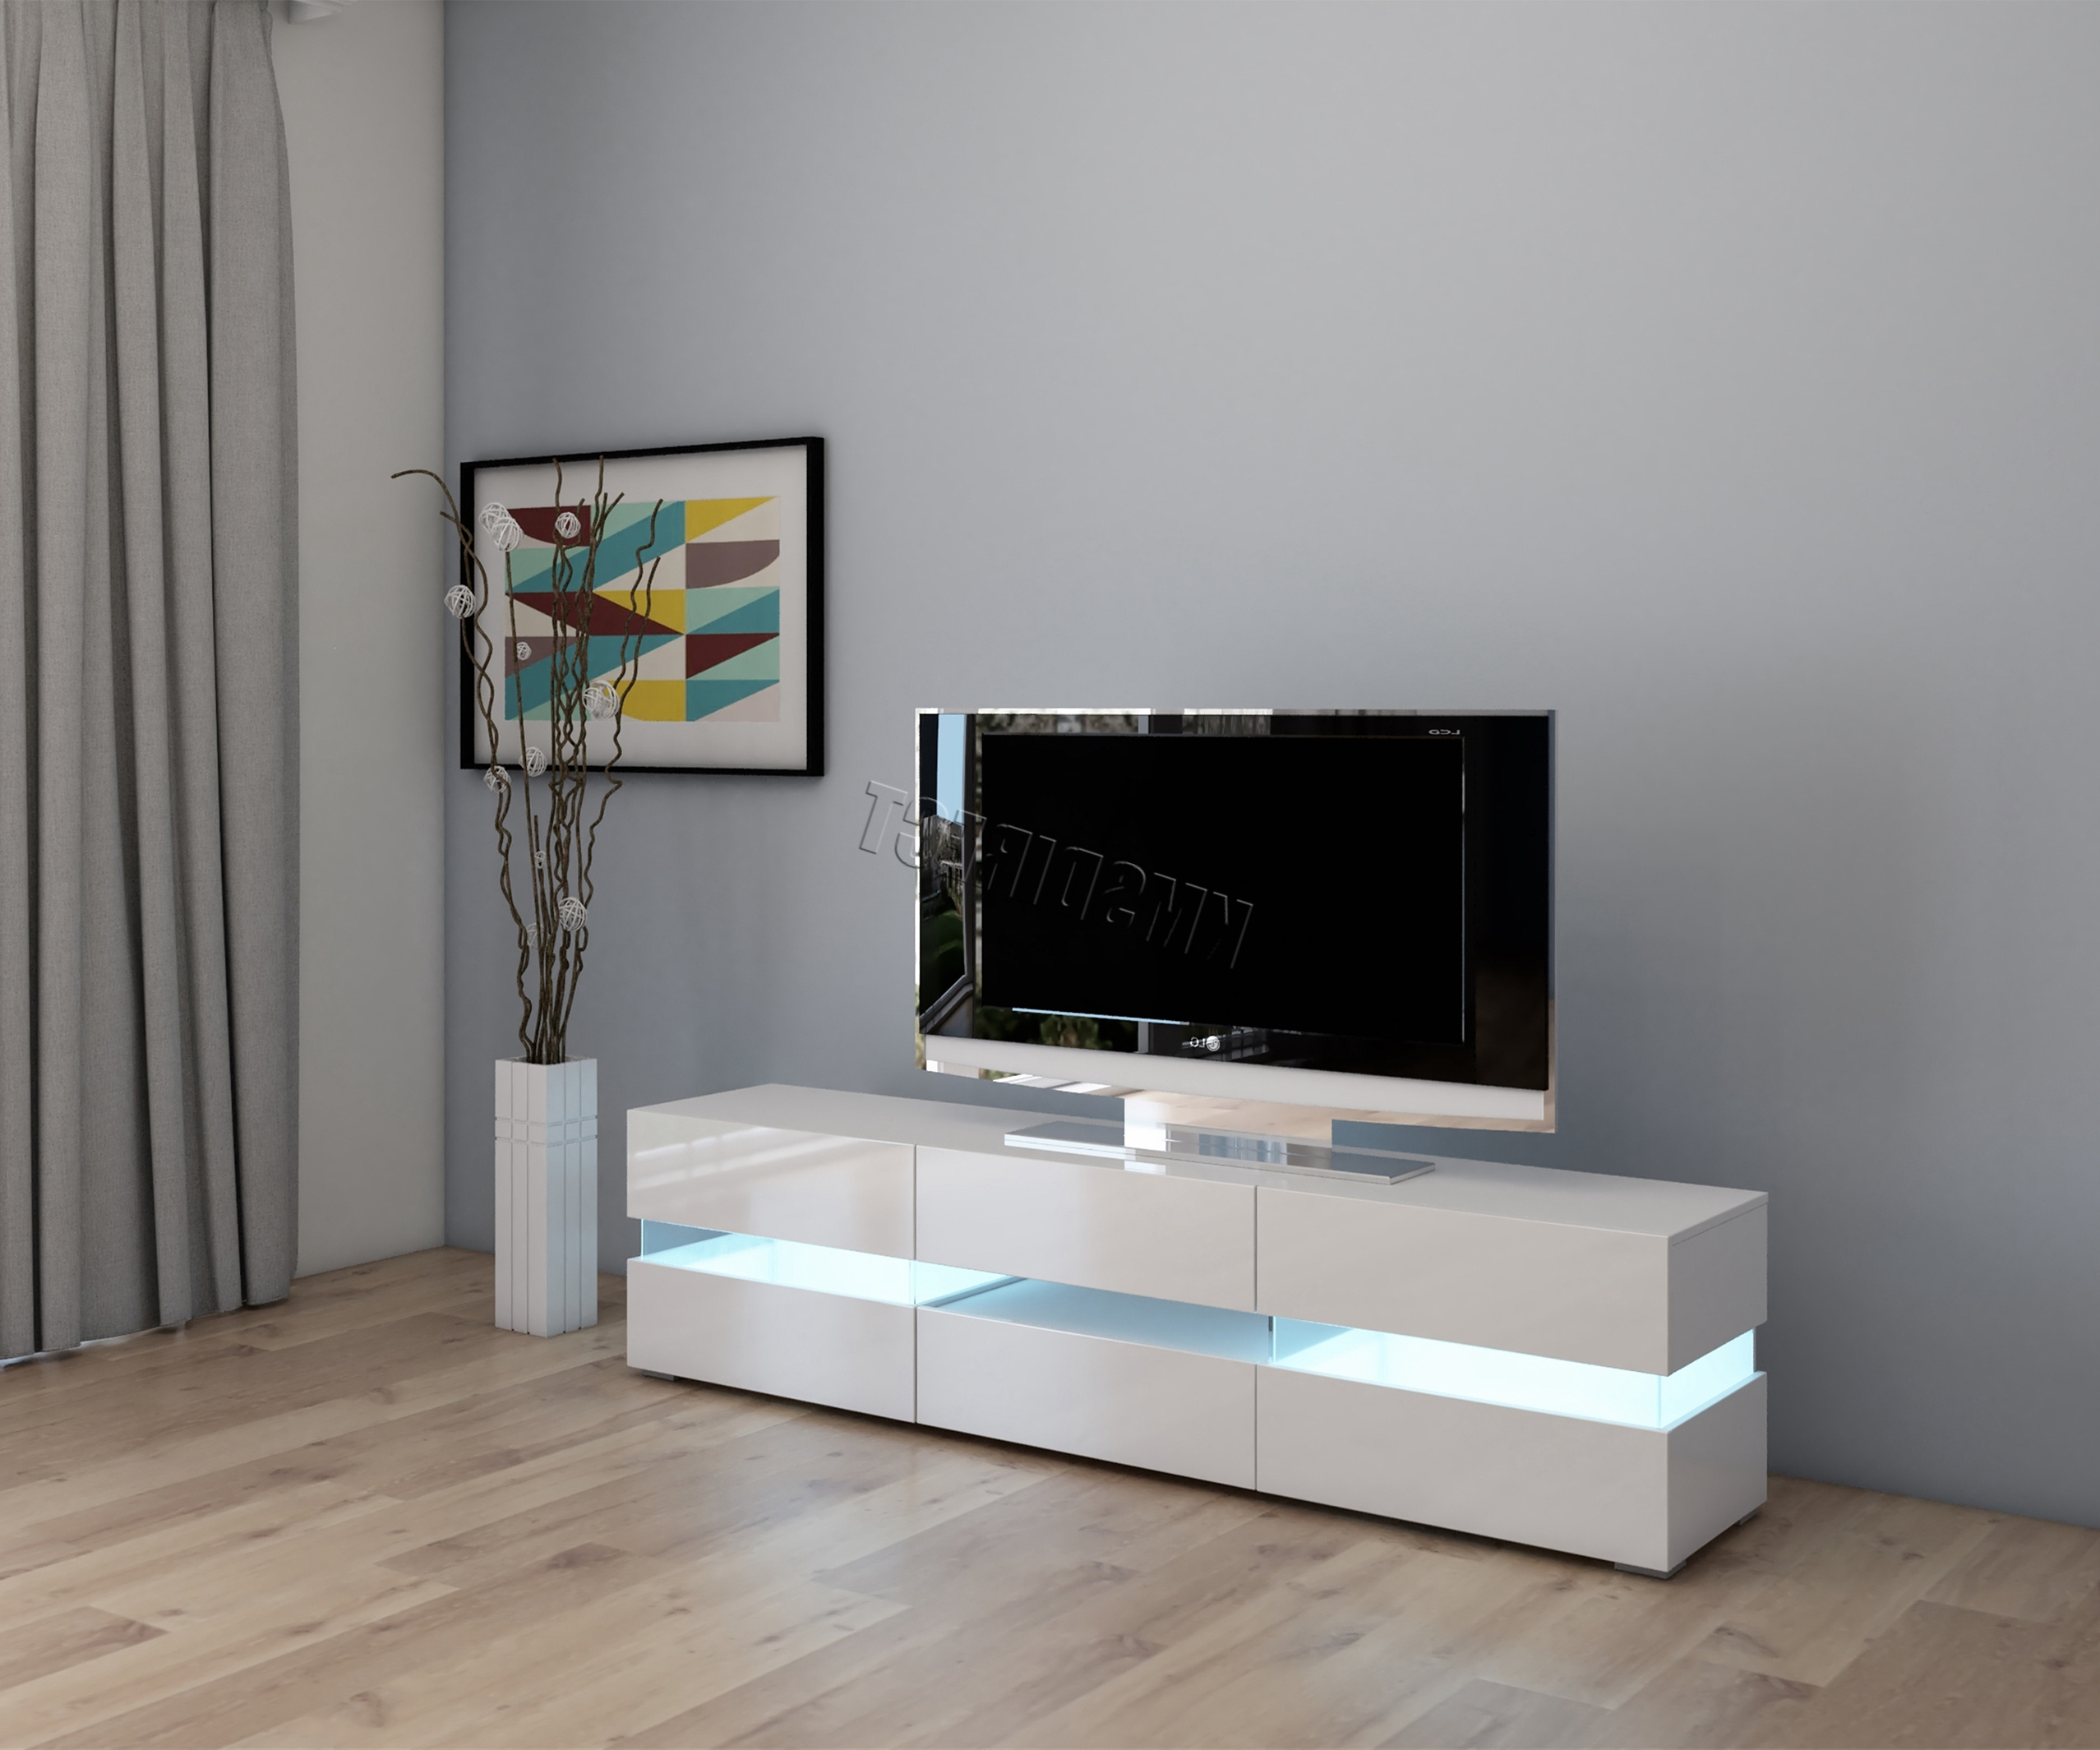 Cosmetic Damaged Modern High Gloss Matt Tv Cabinet Unit Stand White Pertaining To Most Up To Date Gloss White Tv Cabinets (View 2 of 20)